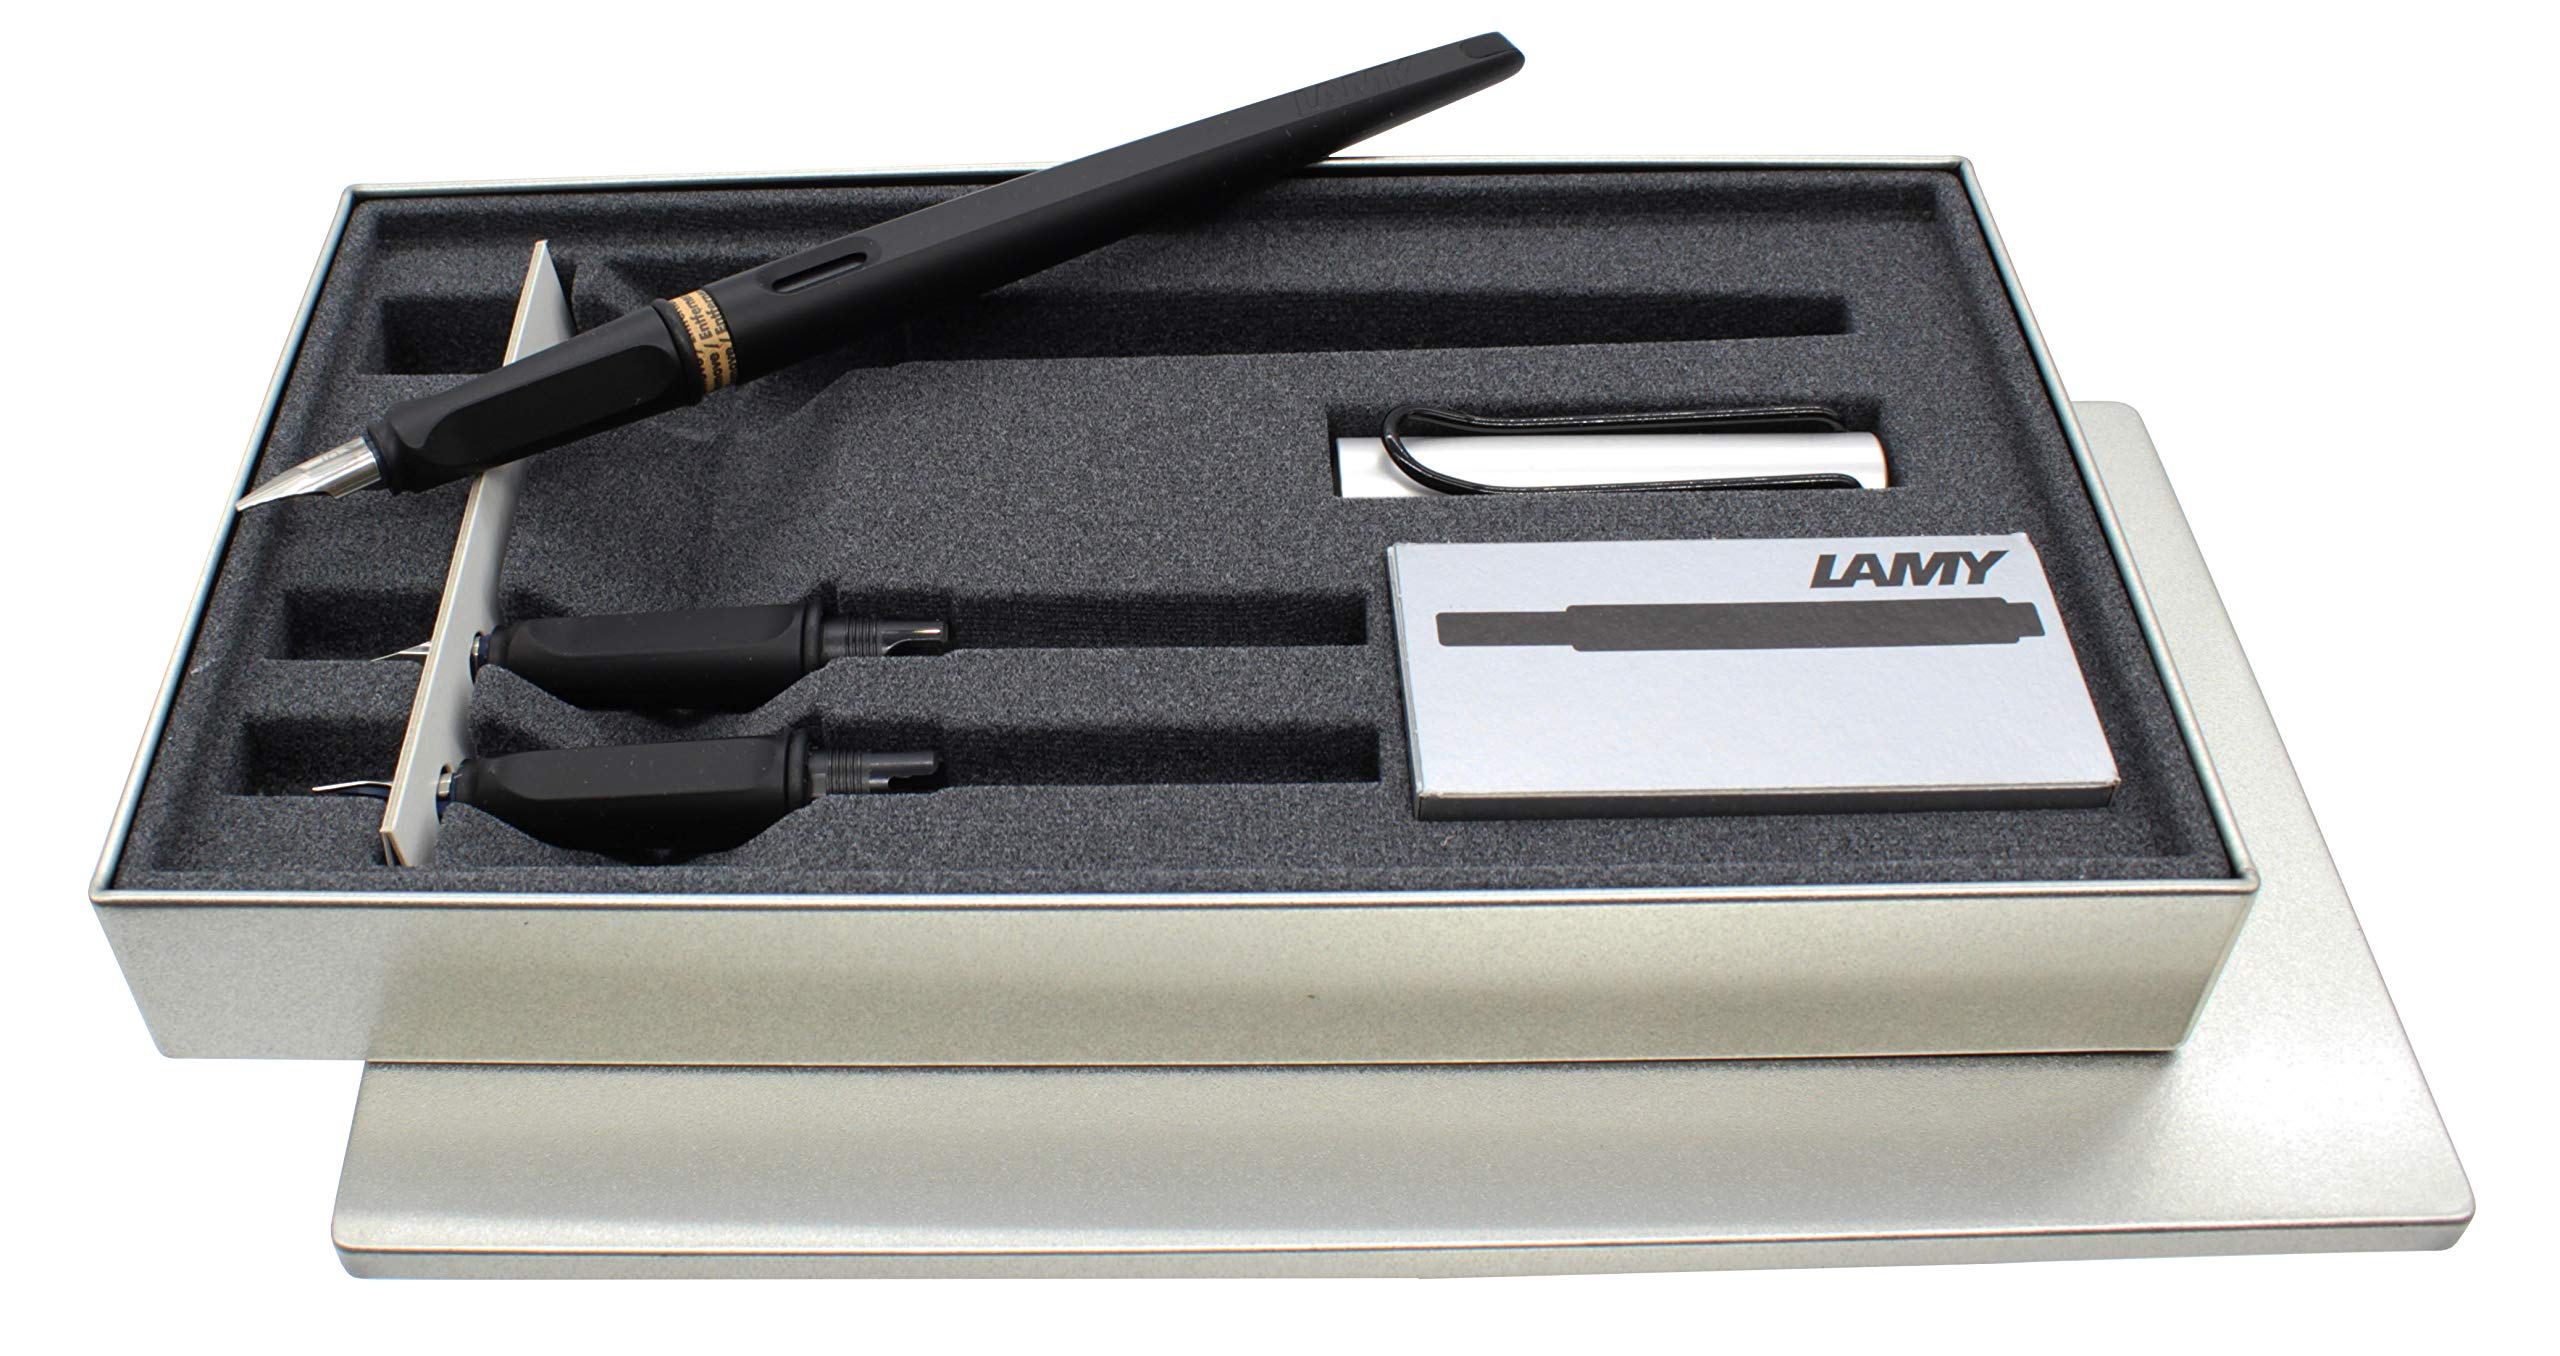 LAMY Joy AL 011 Calligraphy Set in Black and Aluminium with Black Ink Cartridges by Lamy